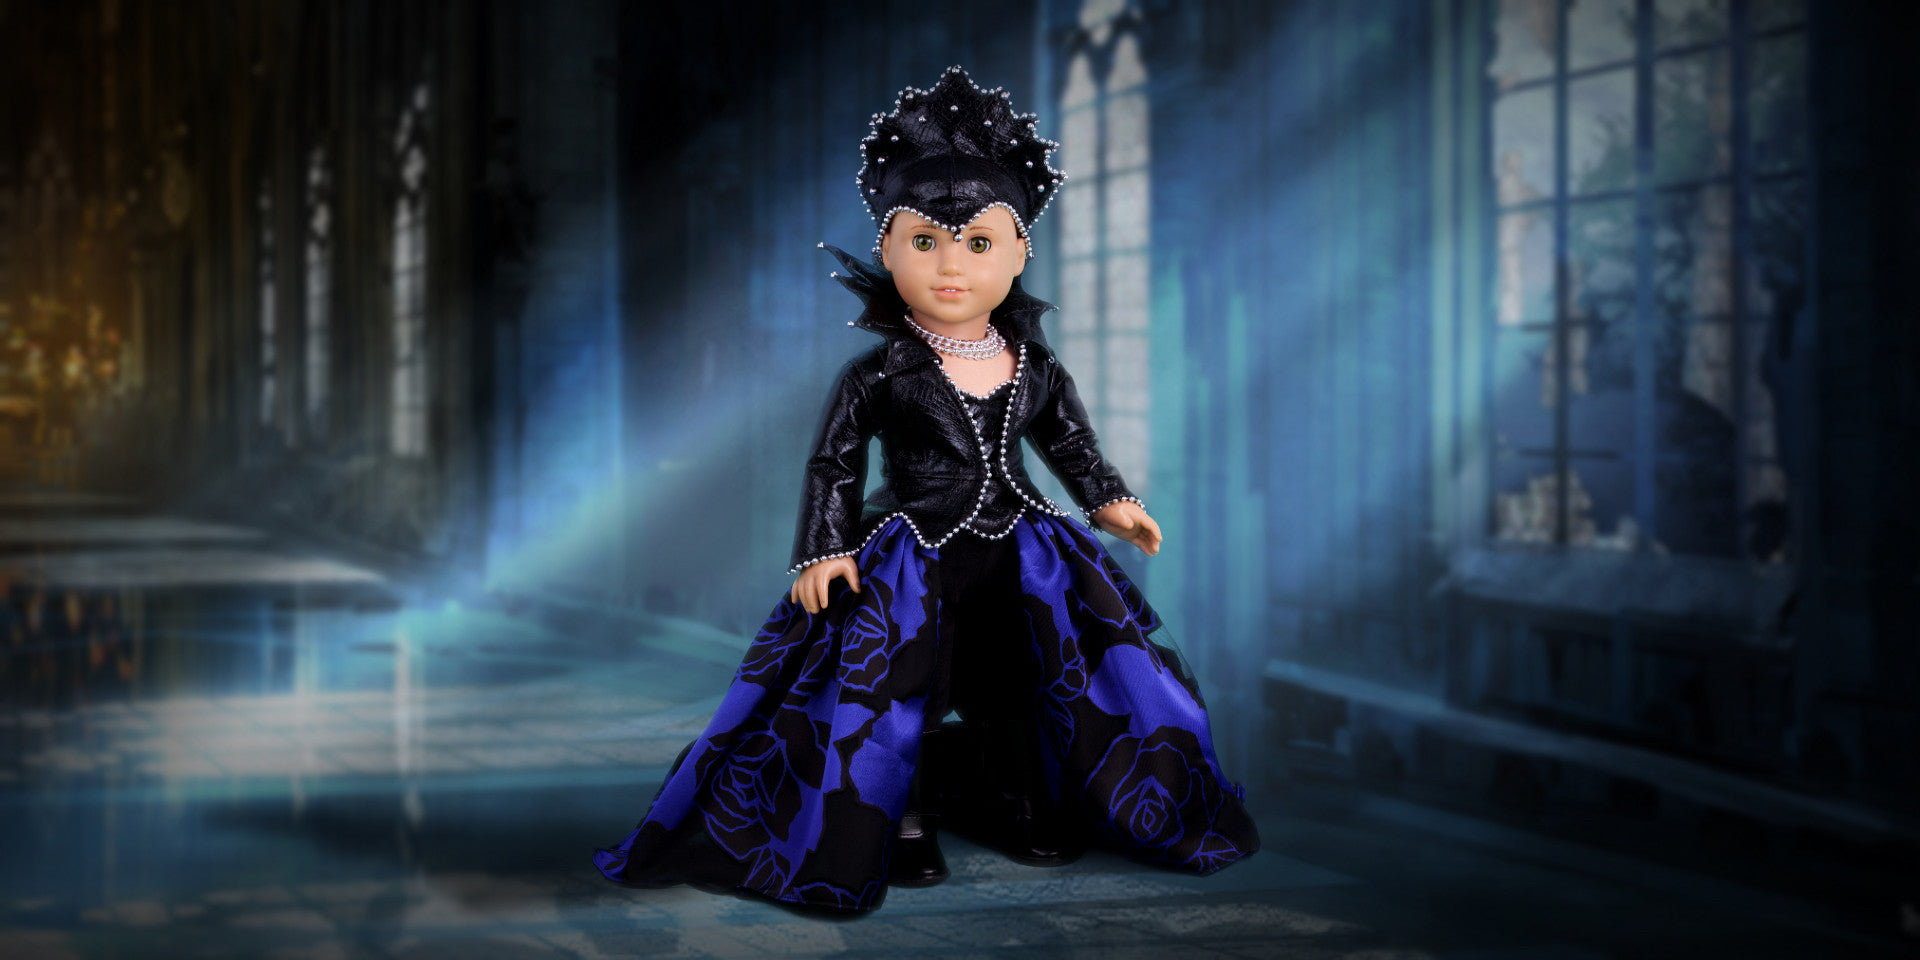 Evil Queen - Doll Clothes - Horseback Riding Doll Outfit